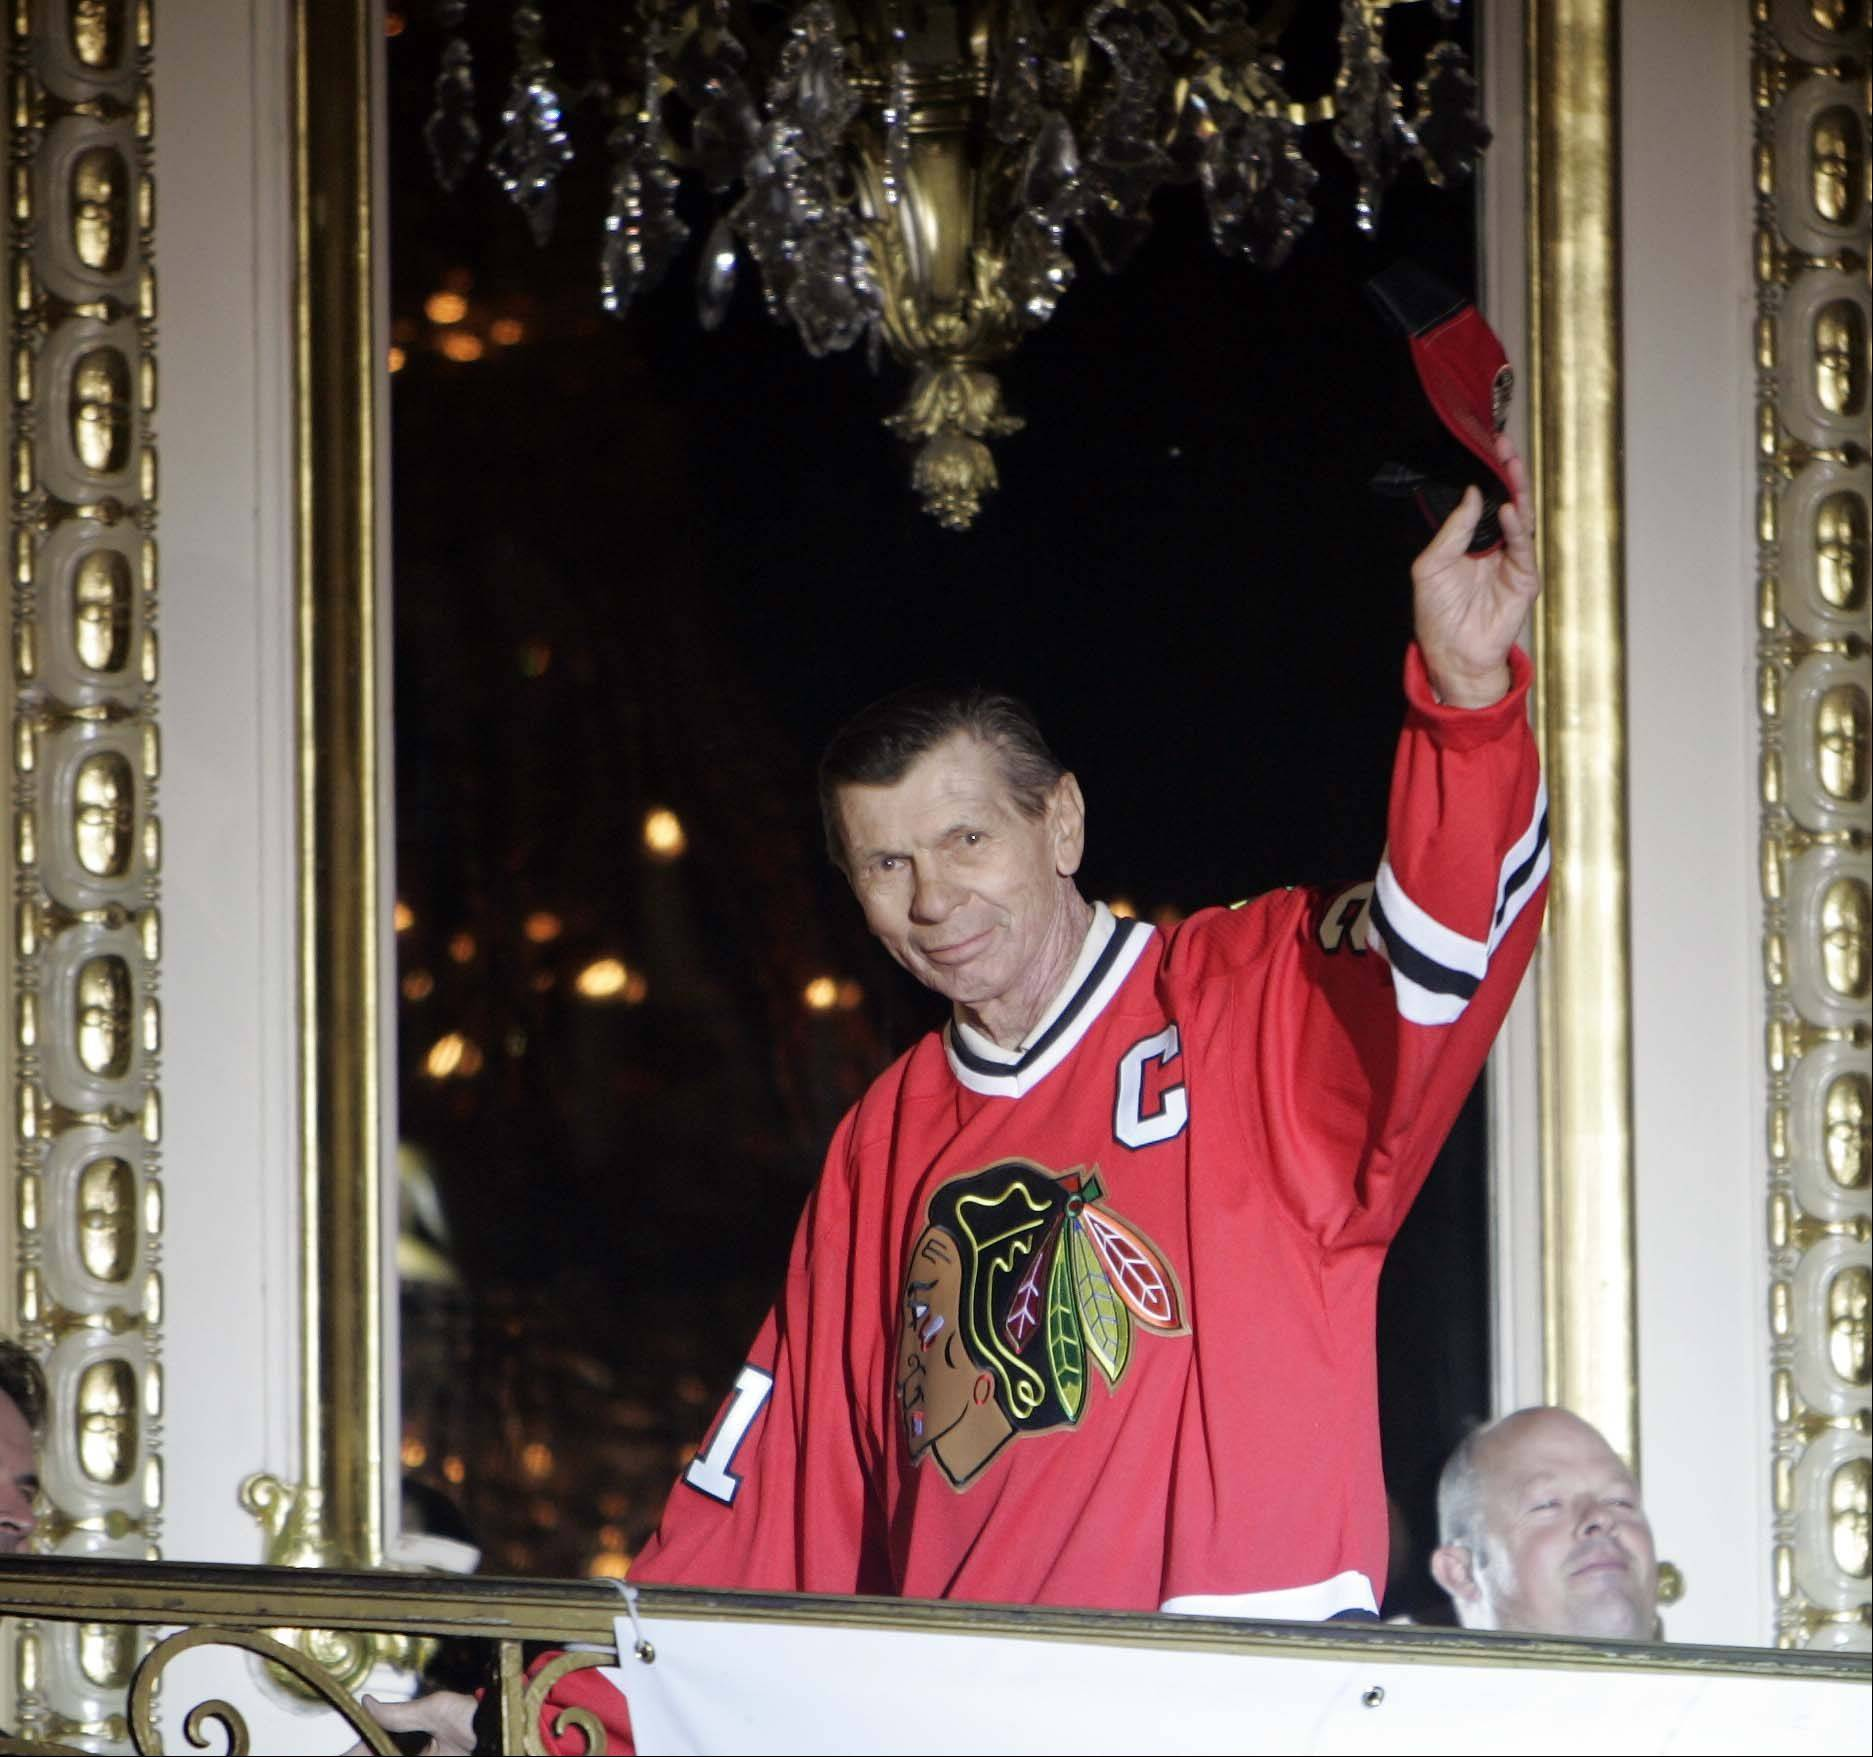 Blackhawks legend Stan Mikita feels good about cancer battle